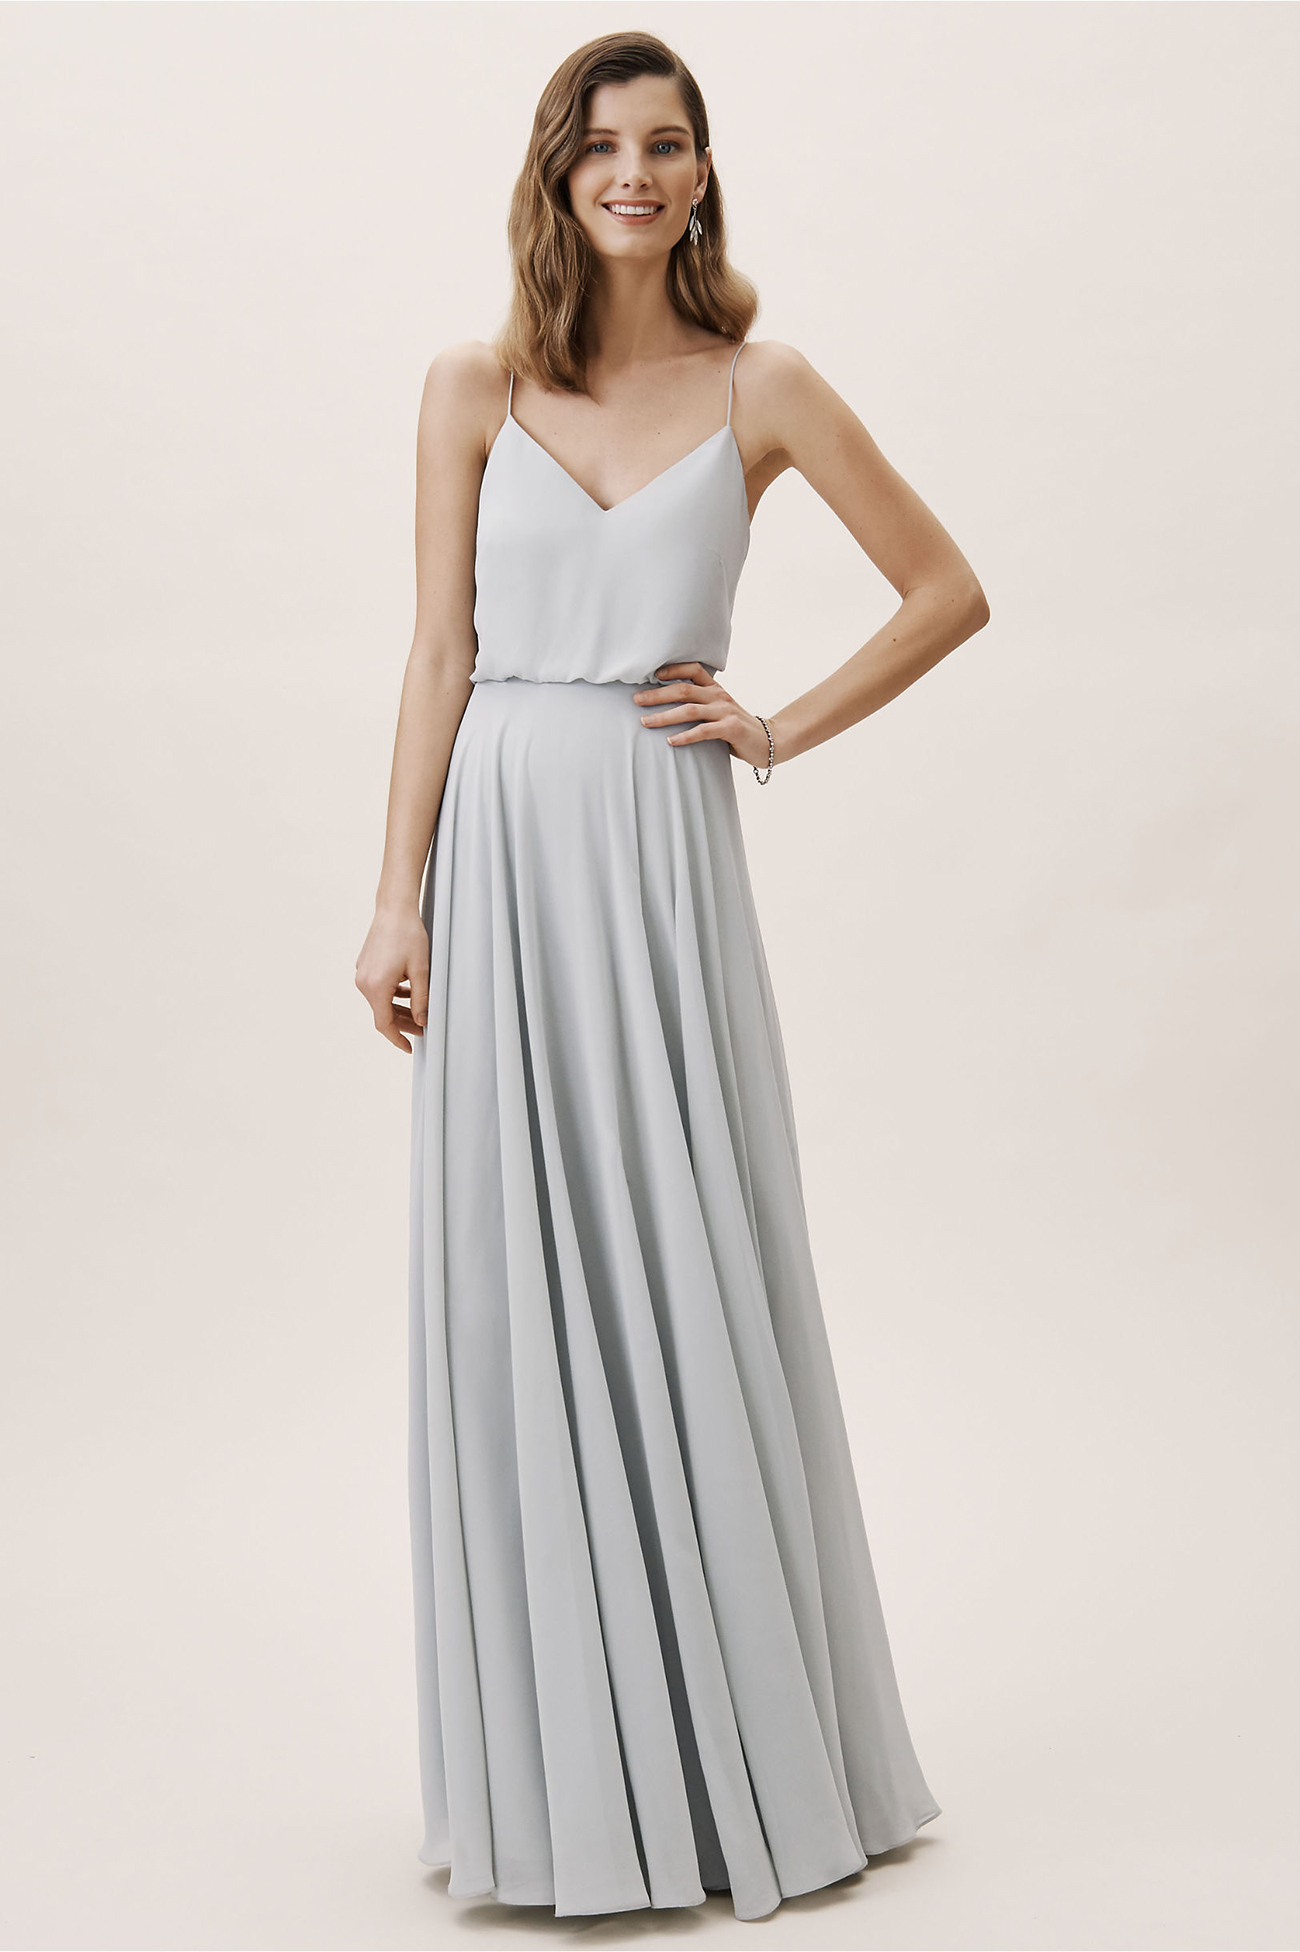 Inesse Dress in Whisper Blue